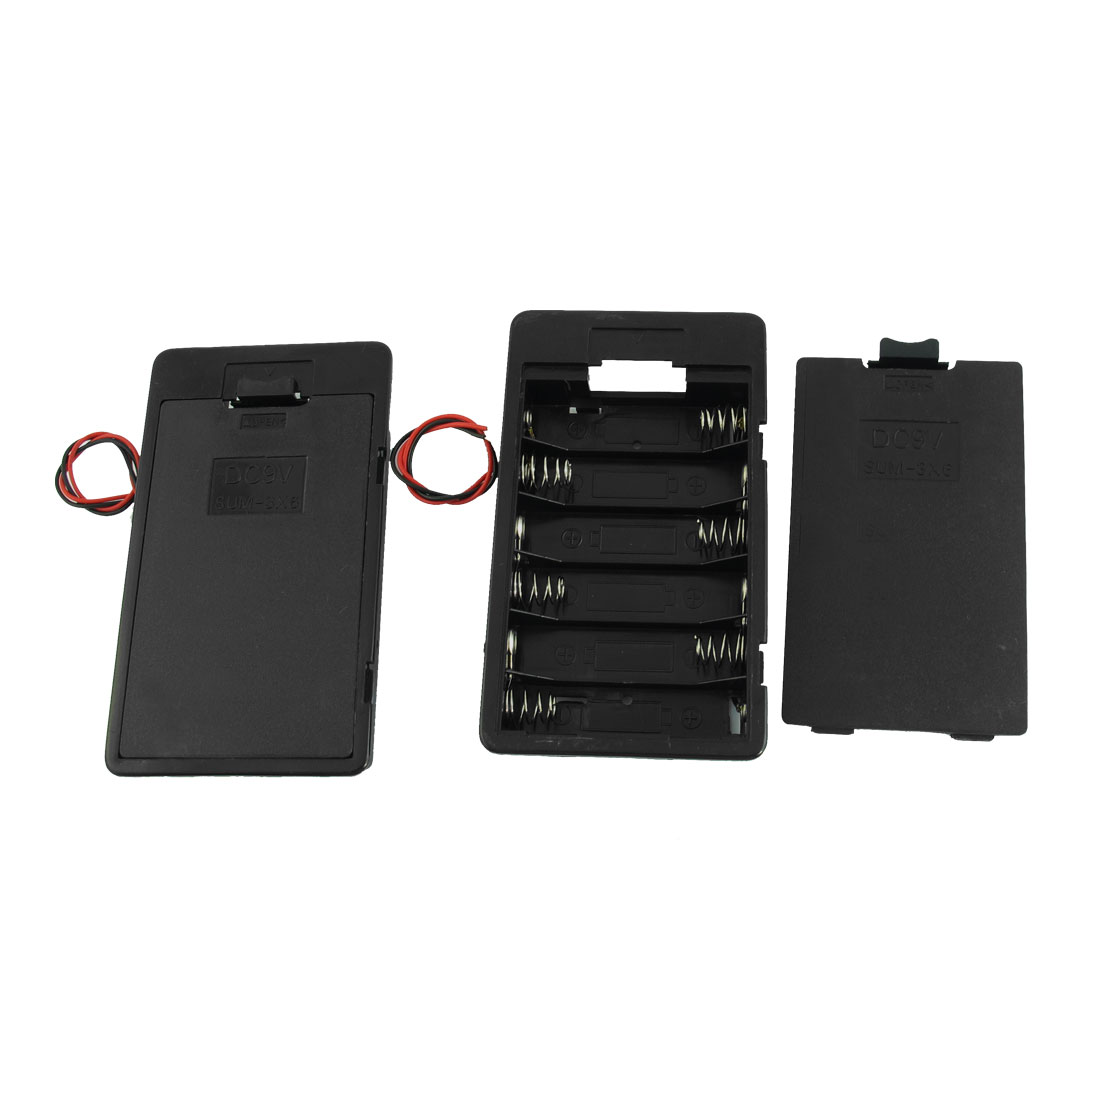 2pcs Black Flat Tip Battery Storage Case Holder for 6 x AA Batteries